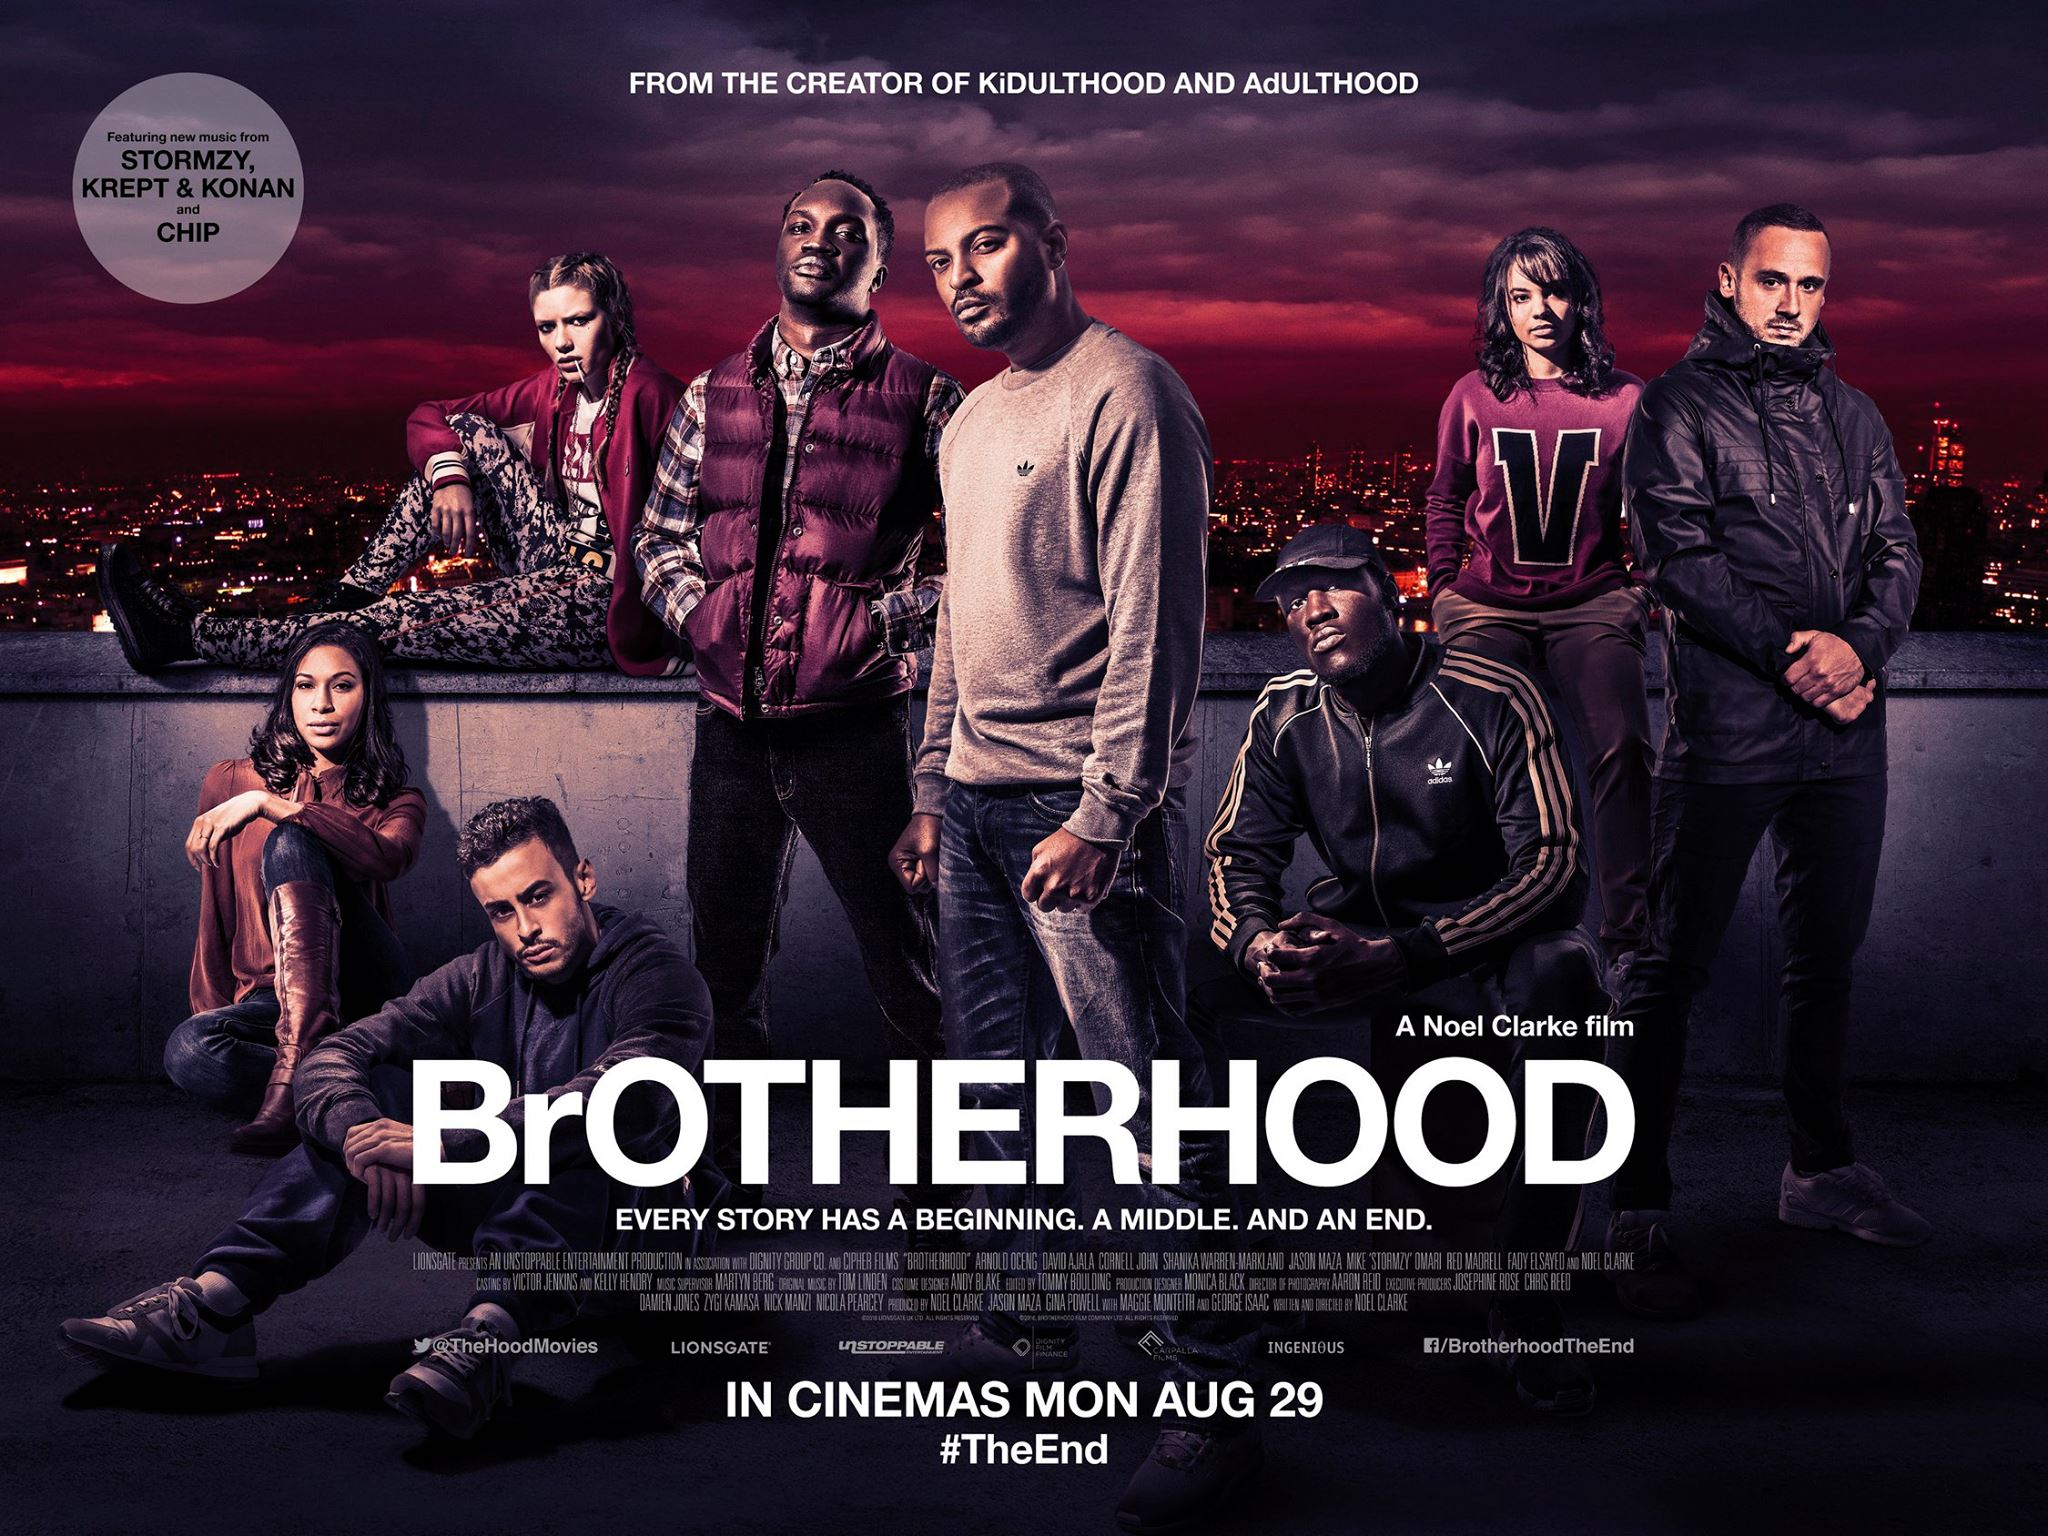 brotherhood-krept-konan-stormzy-p-money